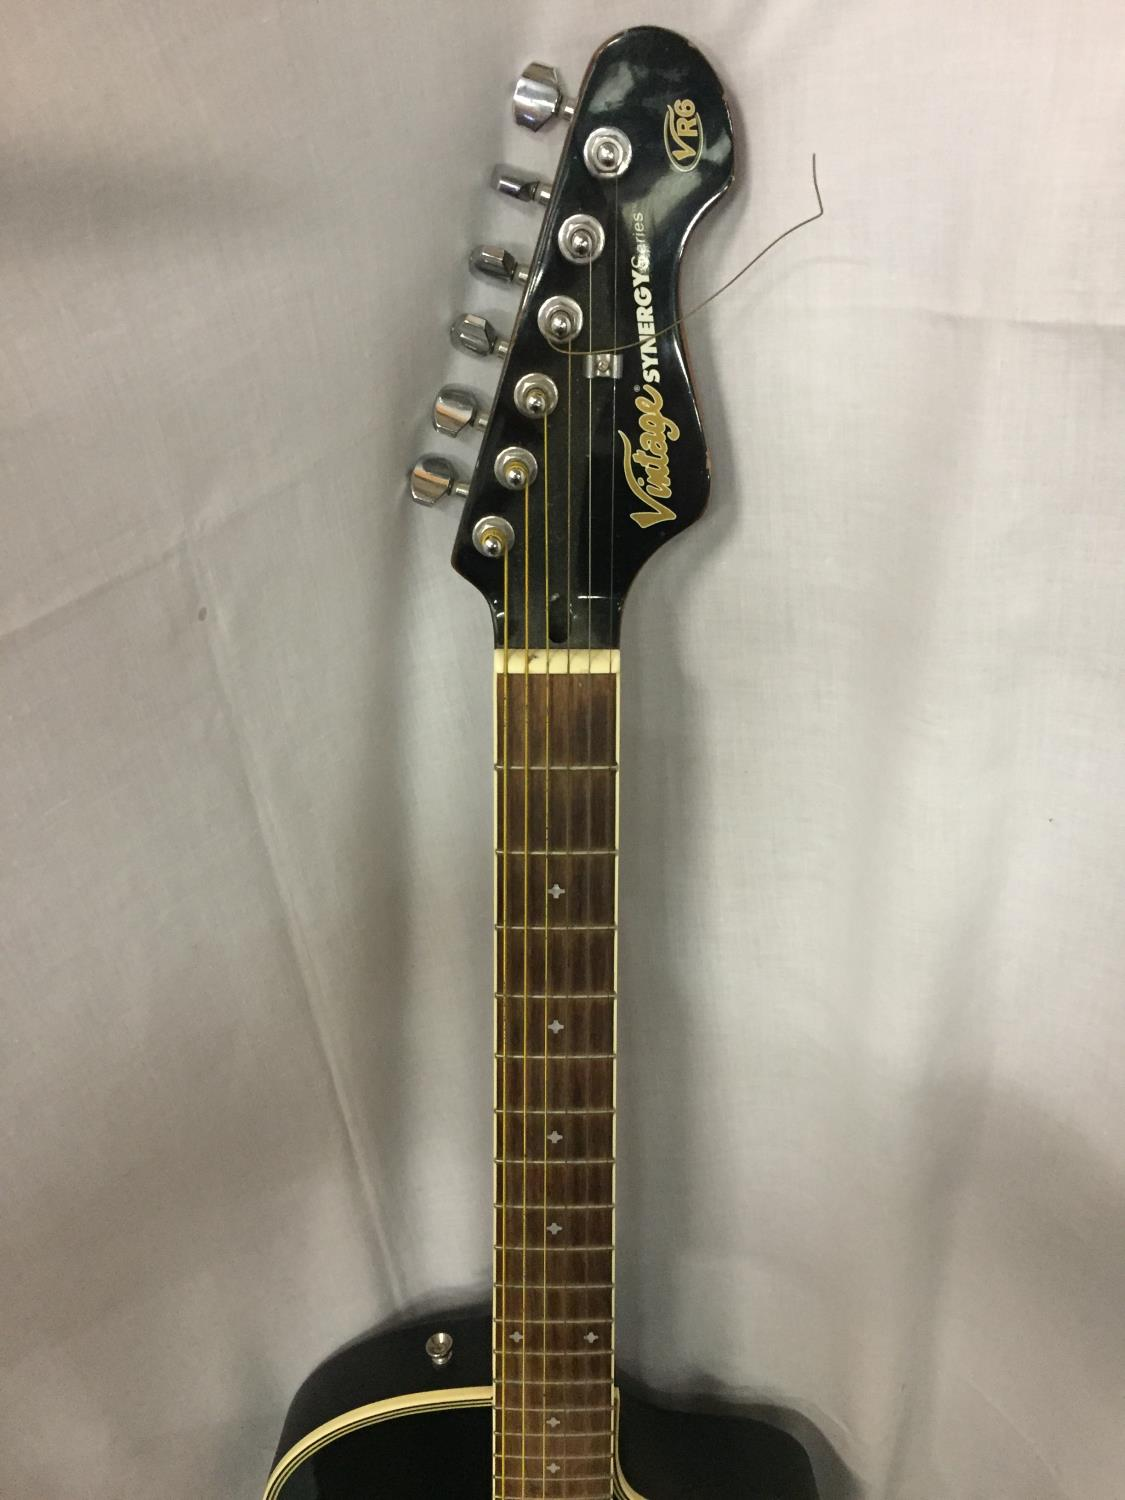 A BLACK VINTAGE SYNERGY SERIES GUITAR - Image 6 of 10